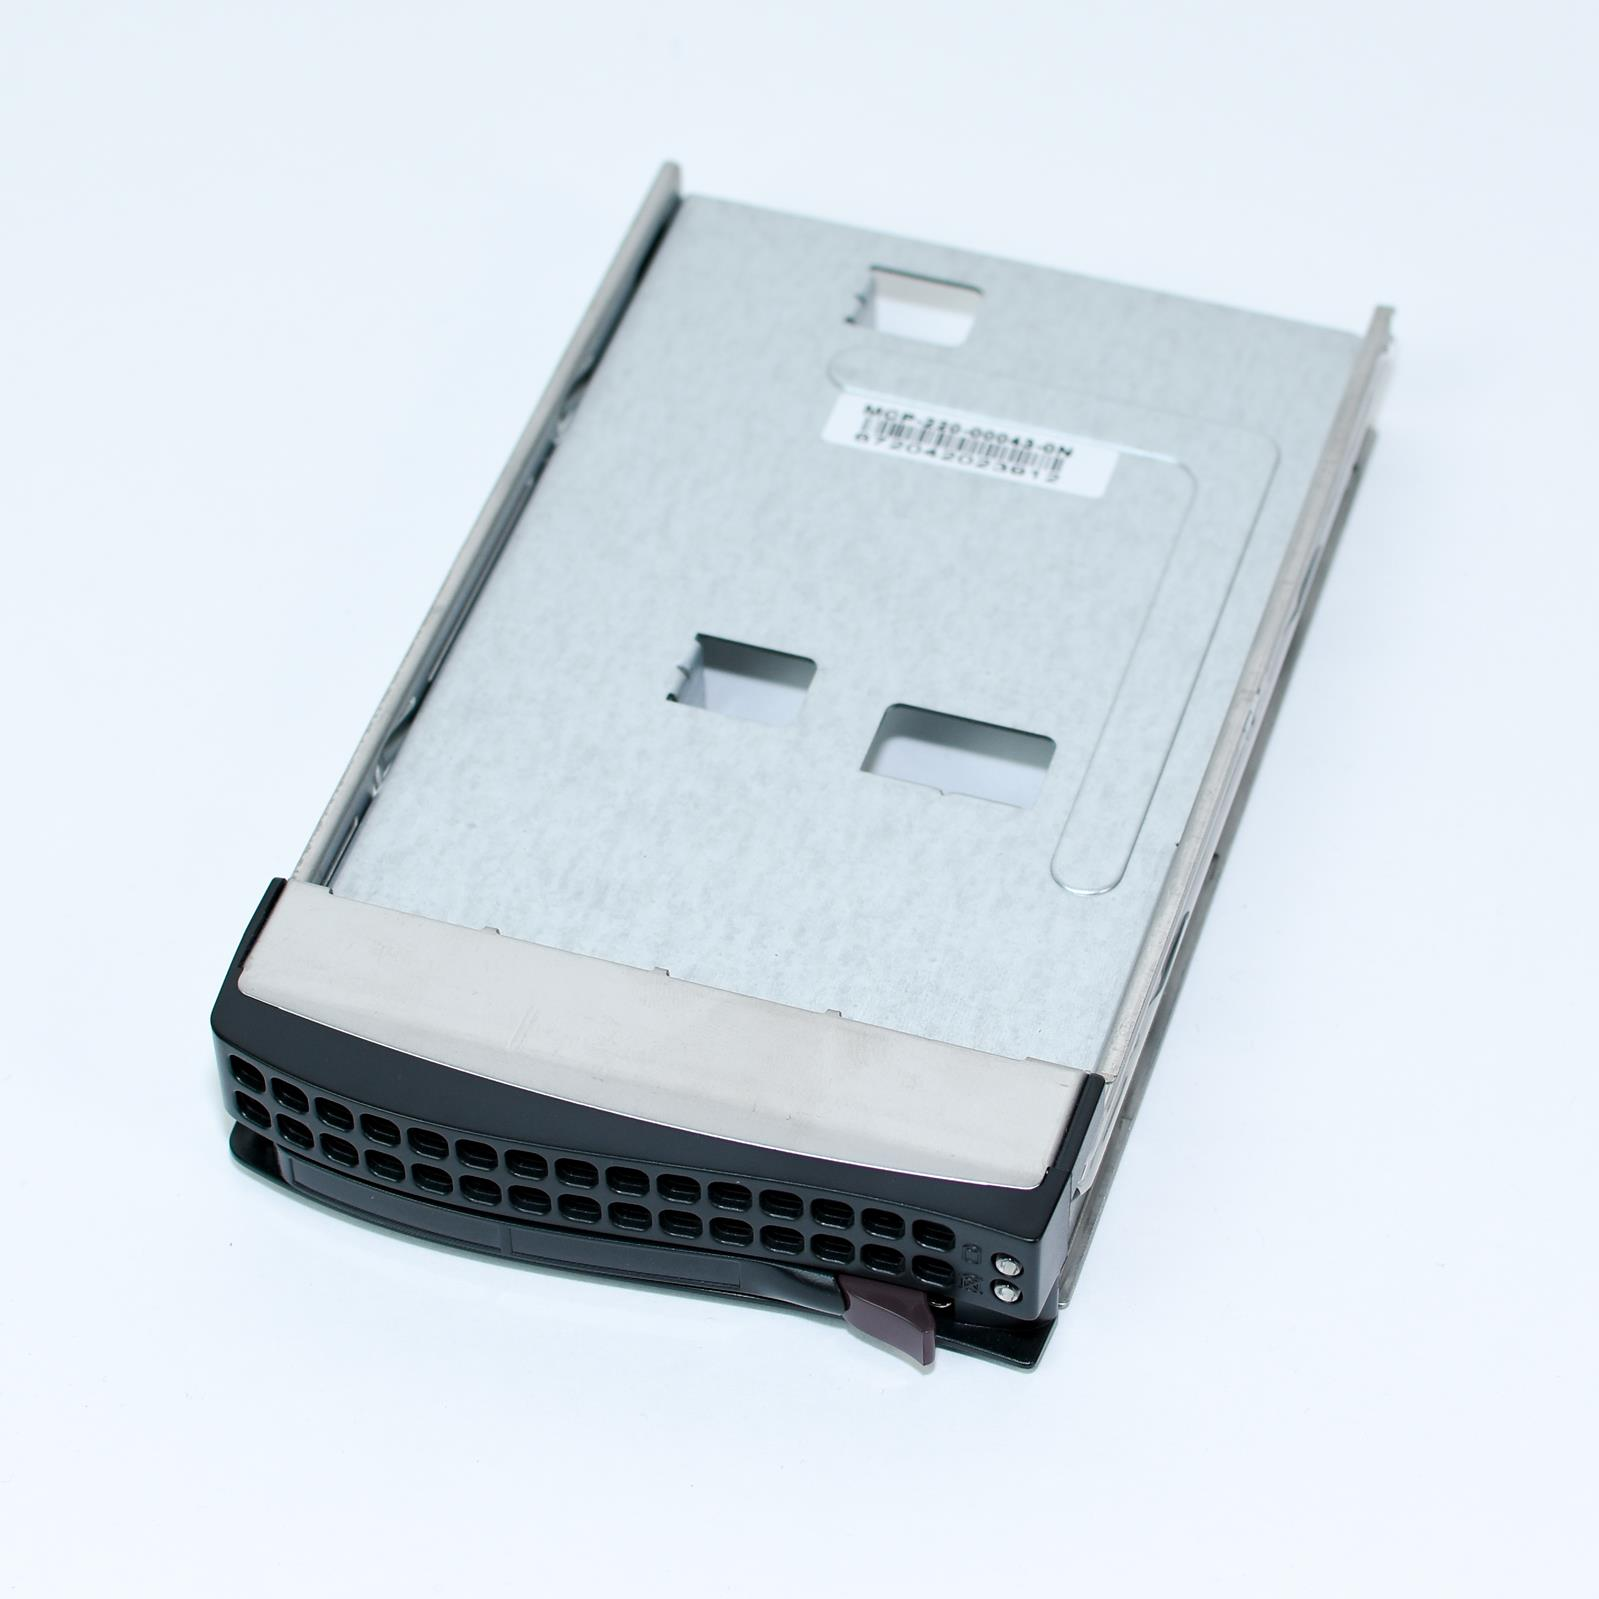 ✿NEW✿ 25 labels for Hot Swap Hard Drive Trays like Supermicro